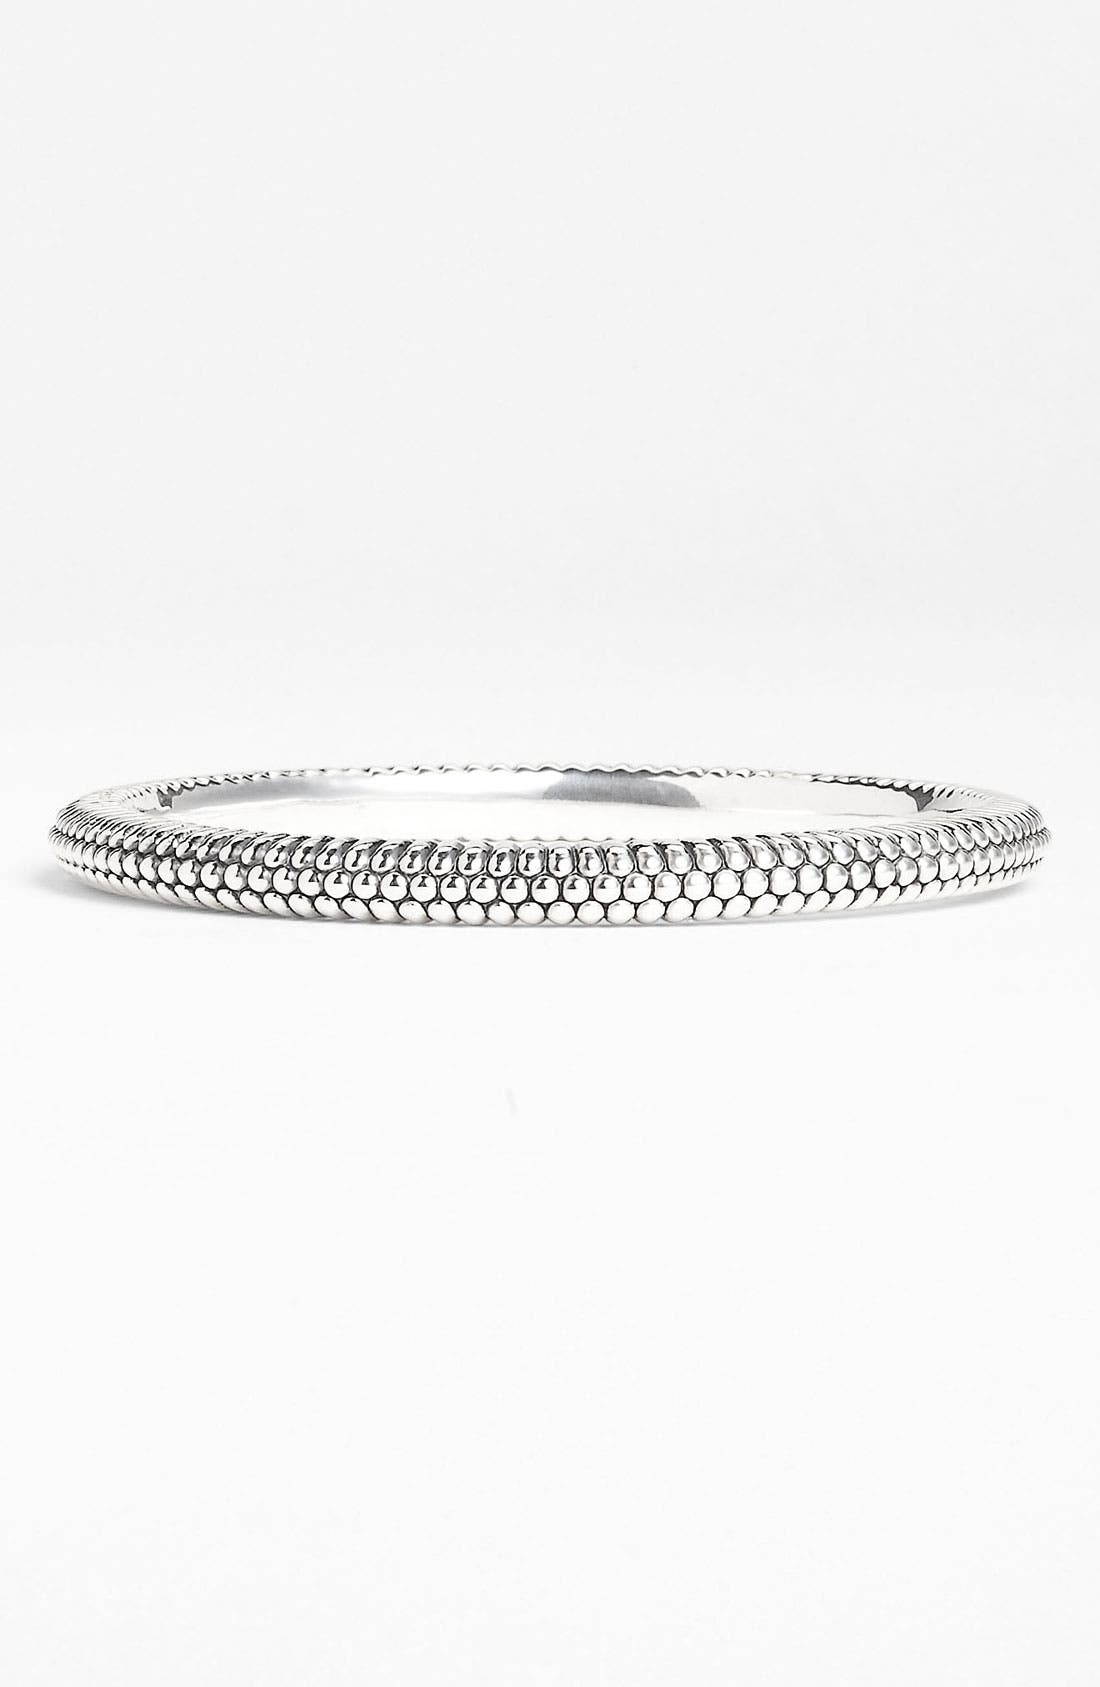 Alternate Image 1 Selected - Simon Sebbag 'Prosecco' Bangle